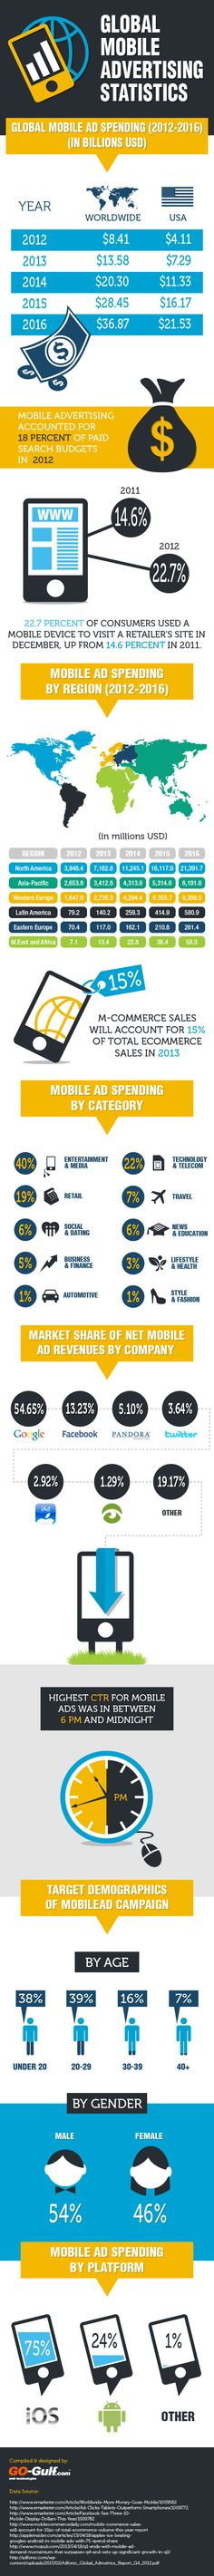 Global Mobile Advertising - Statistics and Trends [Infographic] - Andoni Al-Khoury